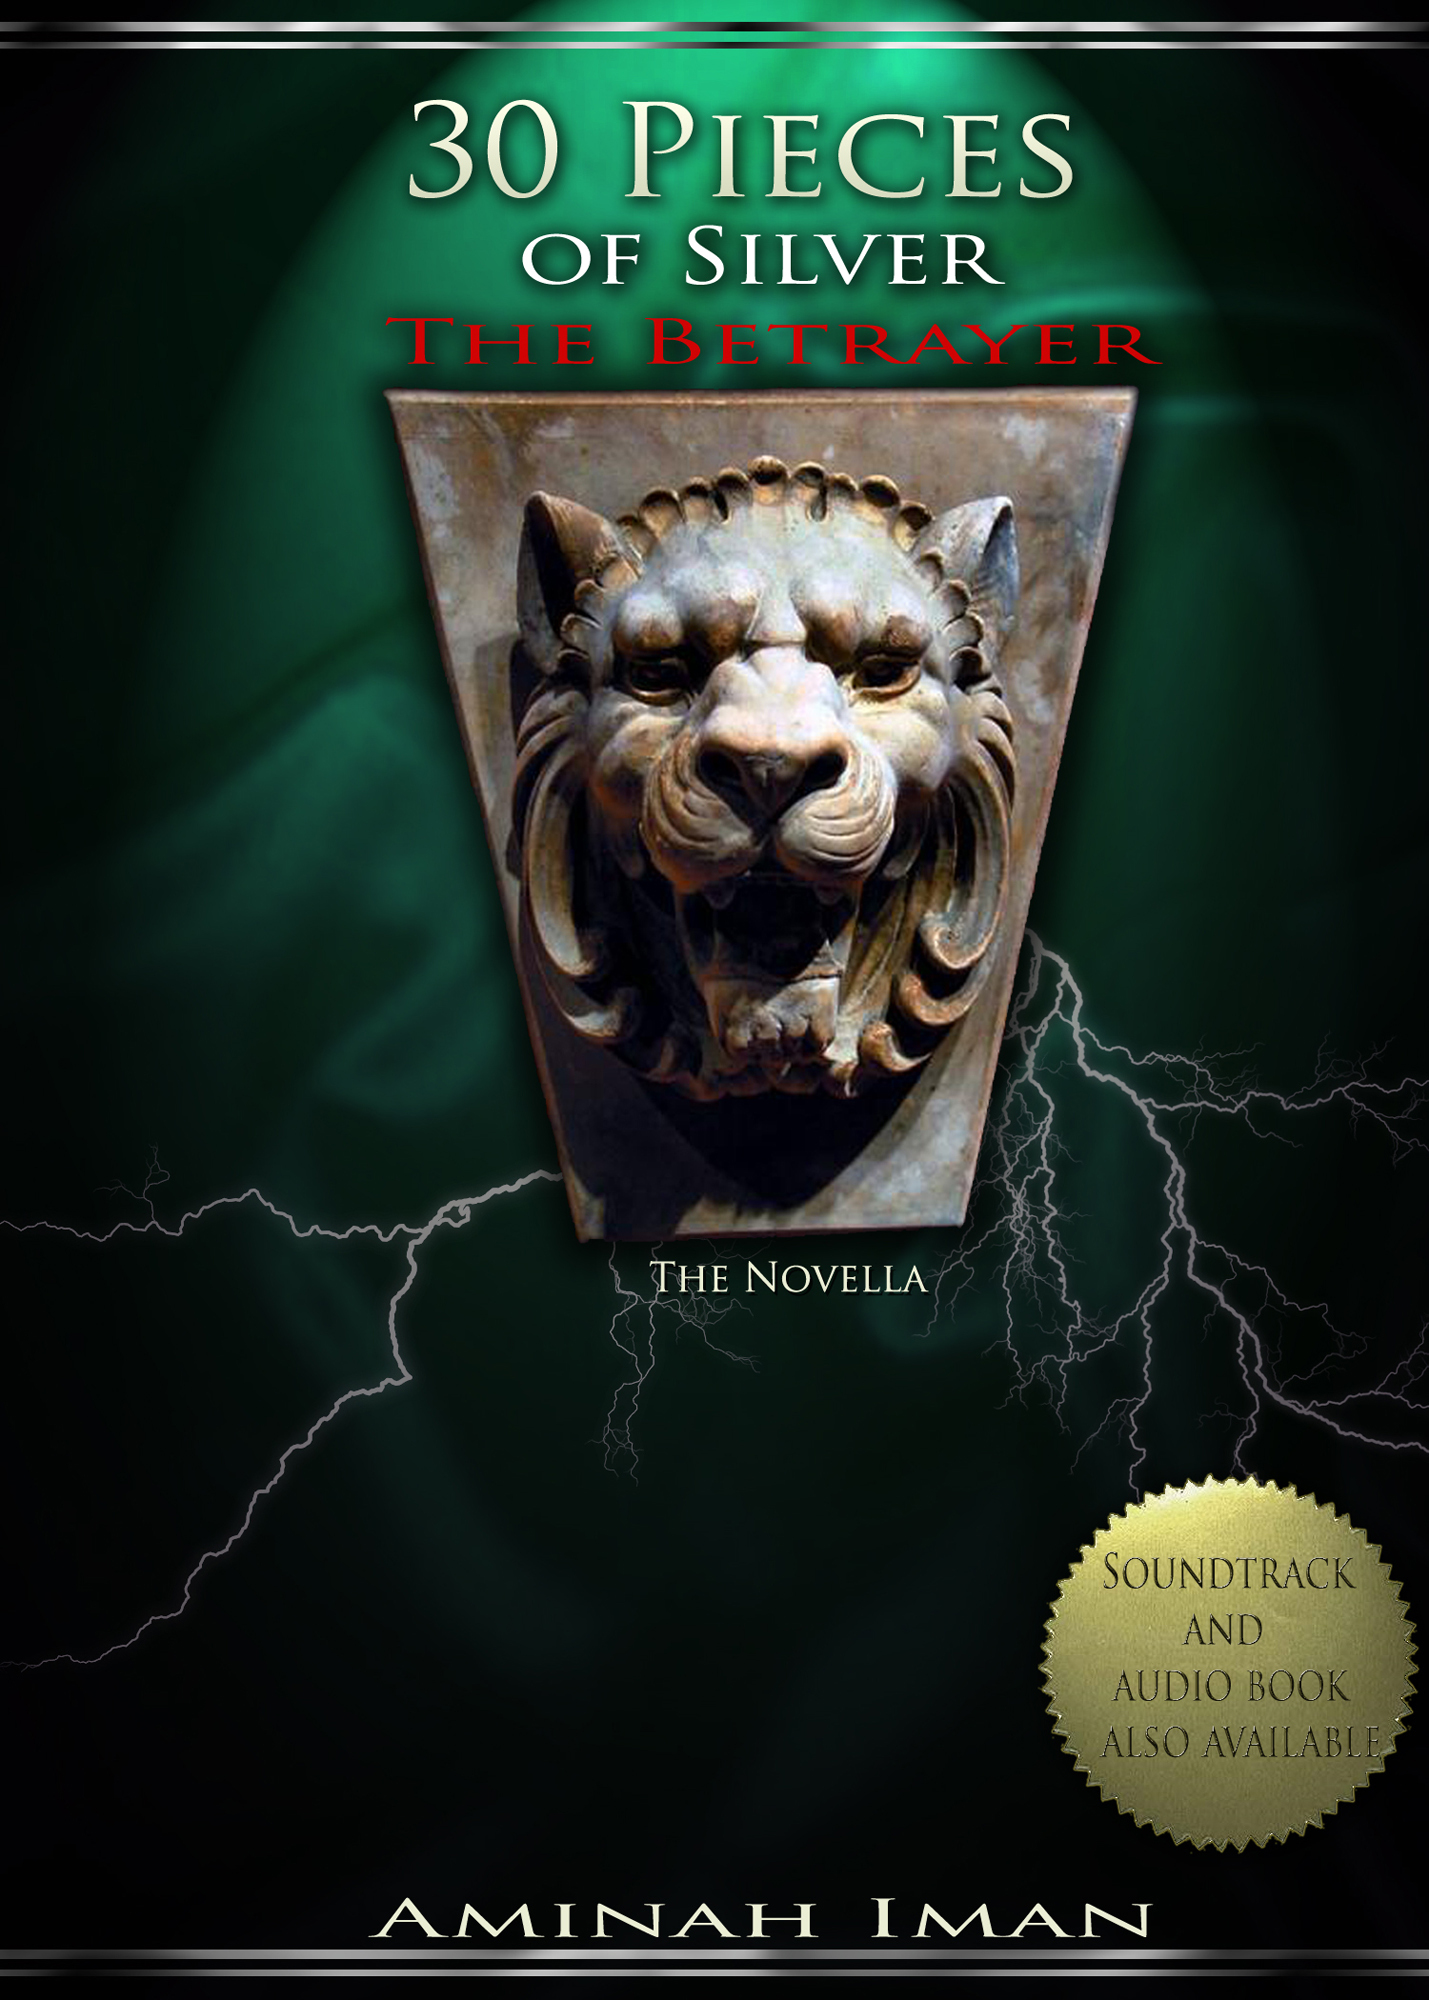 30 Pieces of Silver: Betrayer